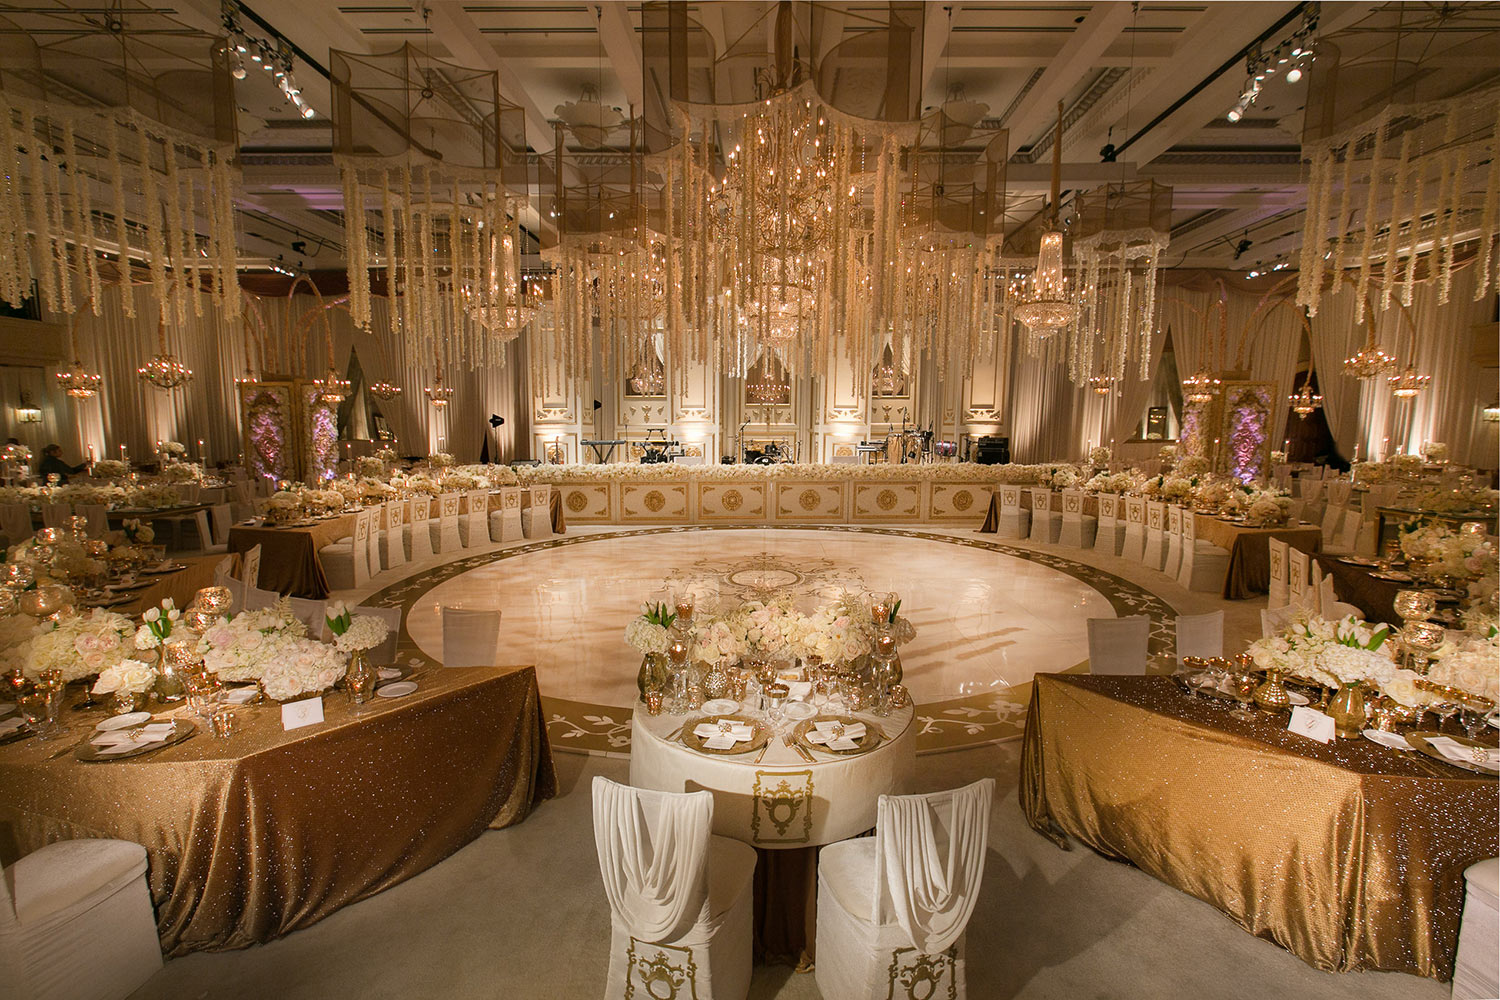 Luxurious ballroom reception setup in white and gold, by Callaway Gable